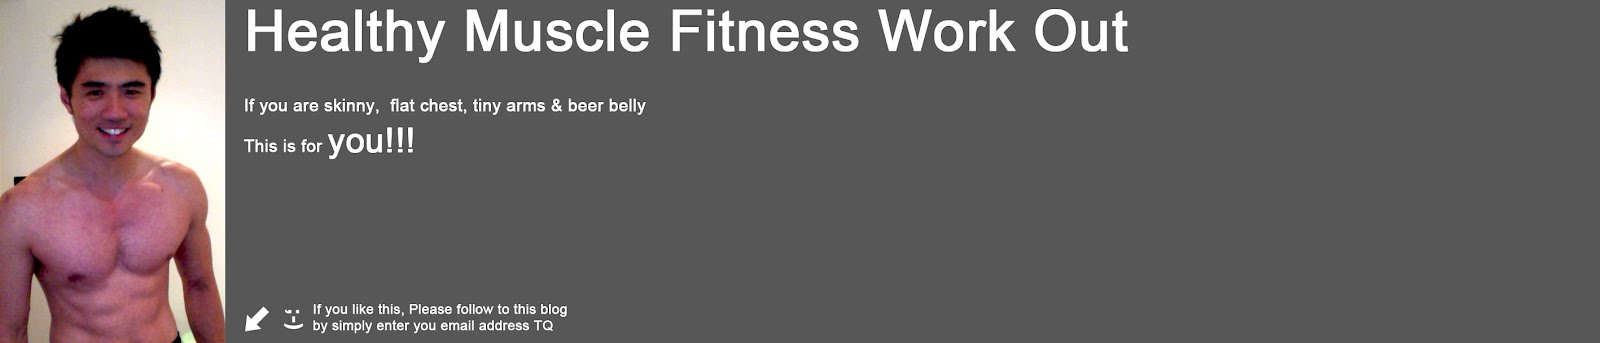 Healthy Muscle Fitness Work Out